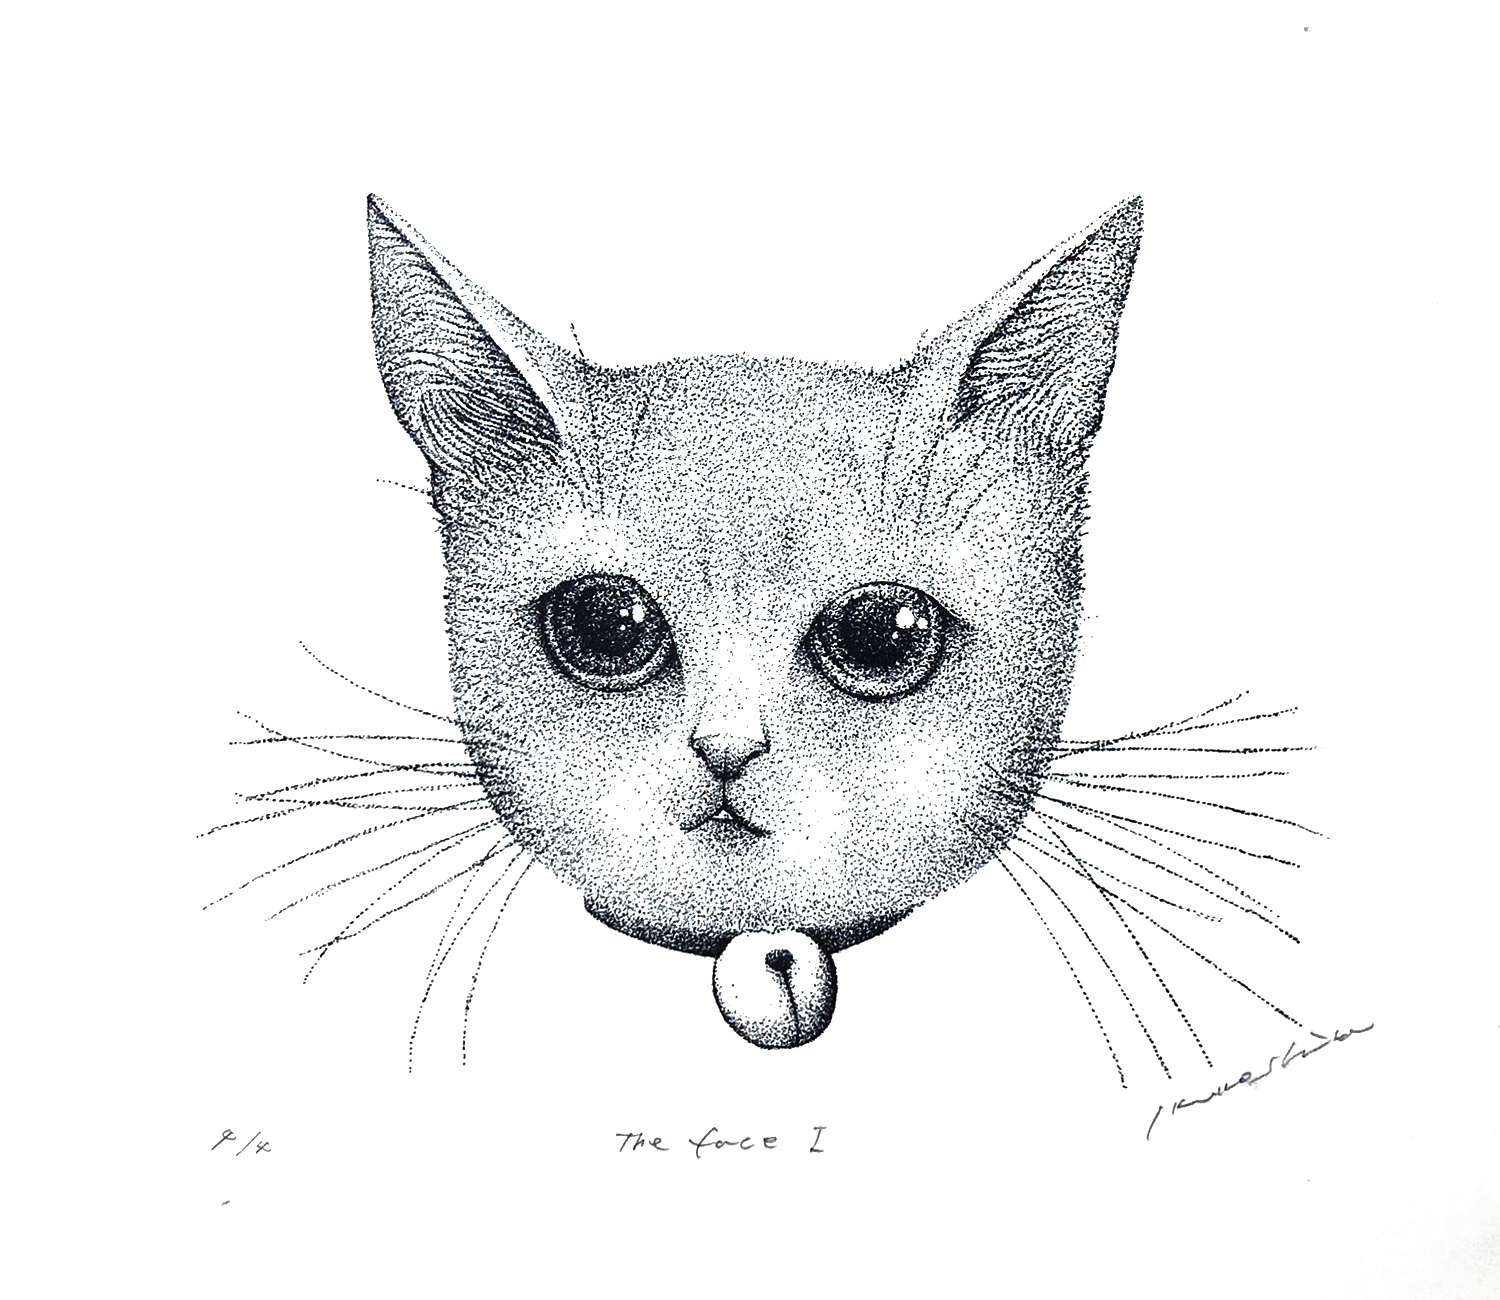 「猫」 The face Ⅰ w238×h210mm 2019 lithograph